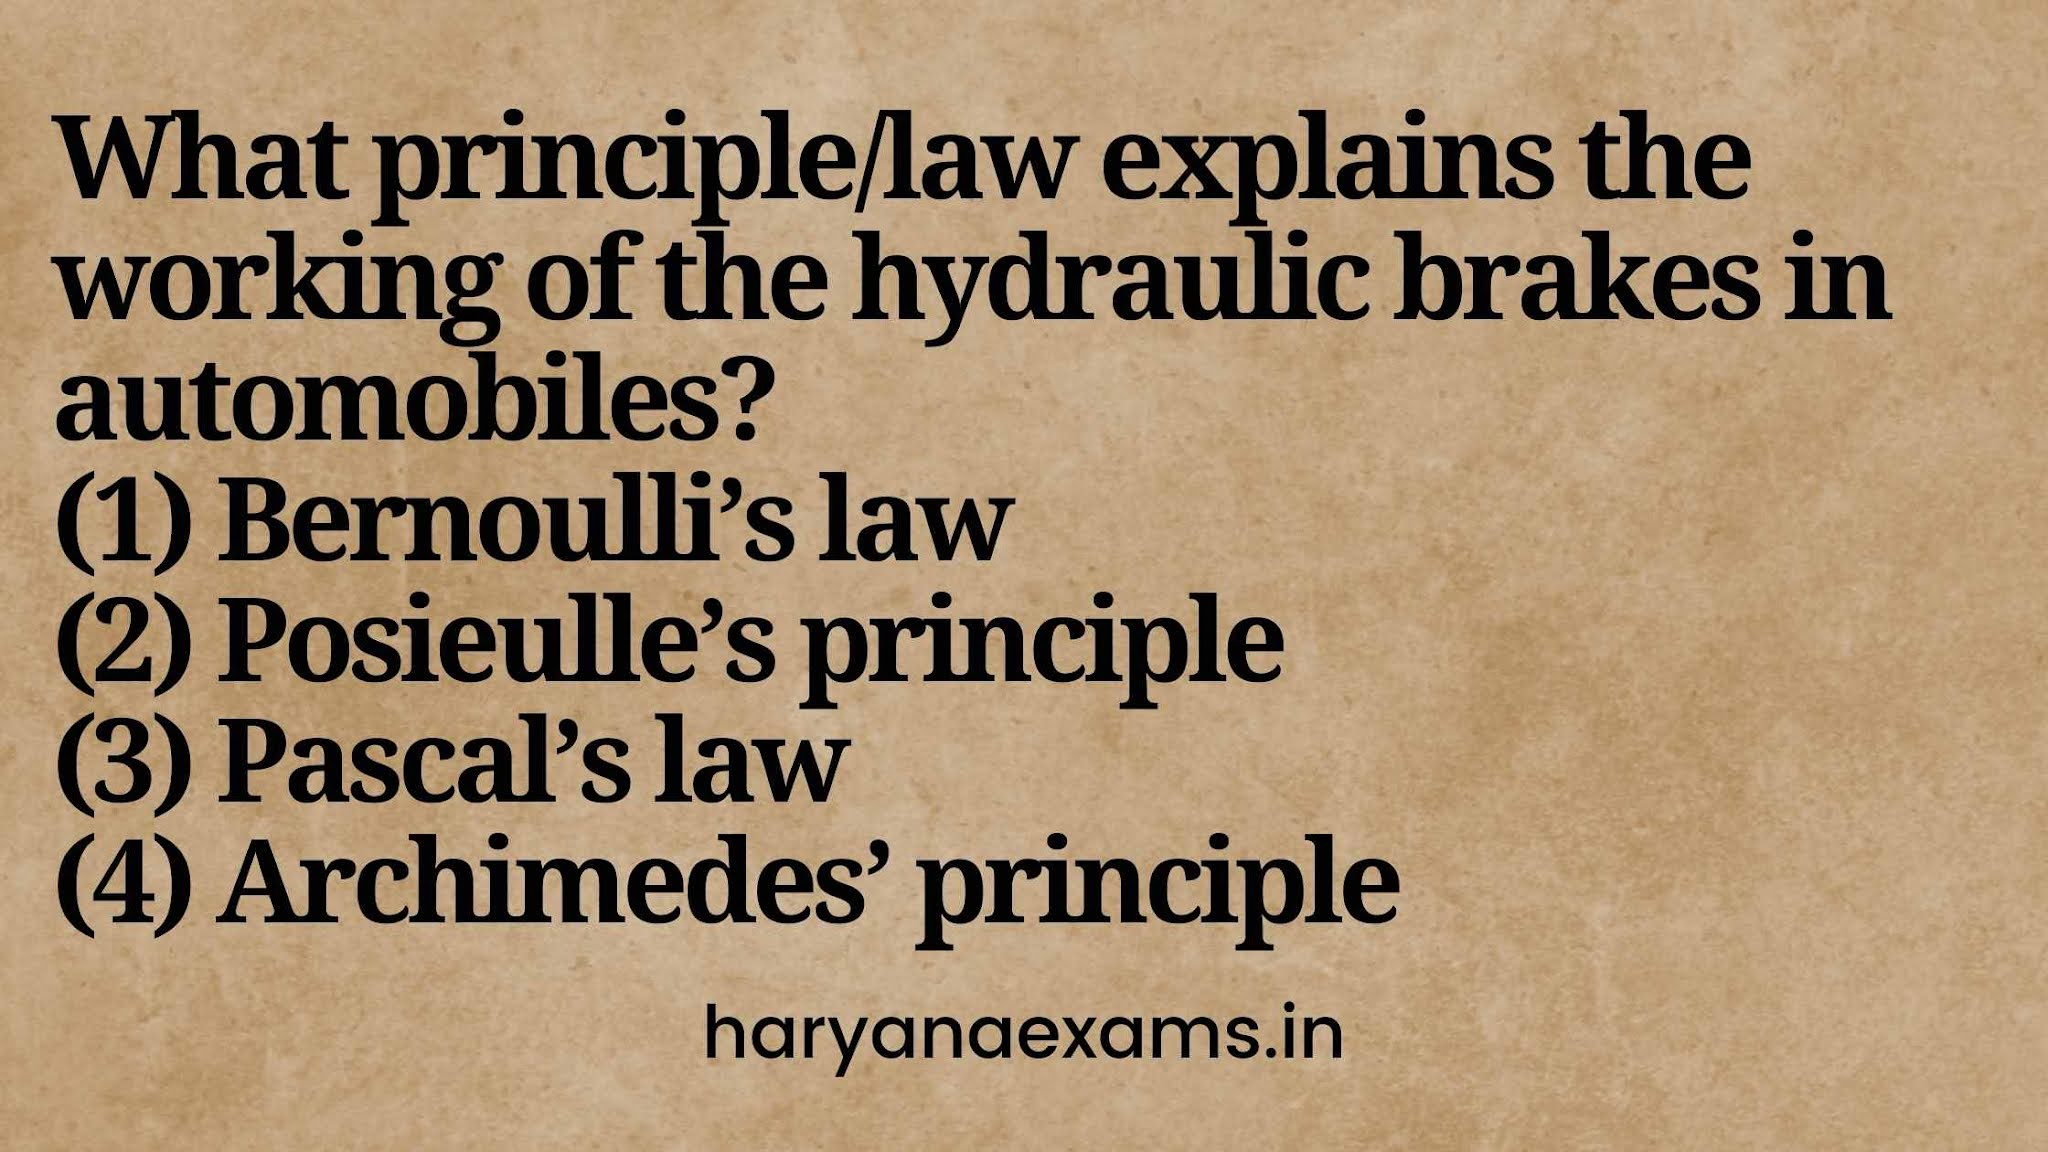 What principle/law explains the working of the hydraulic brakes in automobiles?   (1) Bernoulli's law   (2) Posieulle's principle   (3) Pascal's law   (4) Archimedes' principle